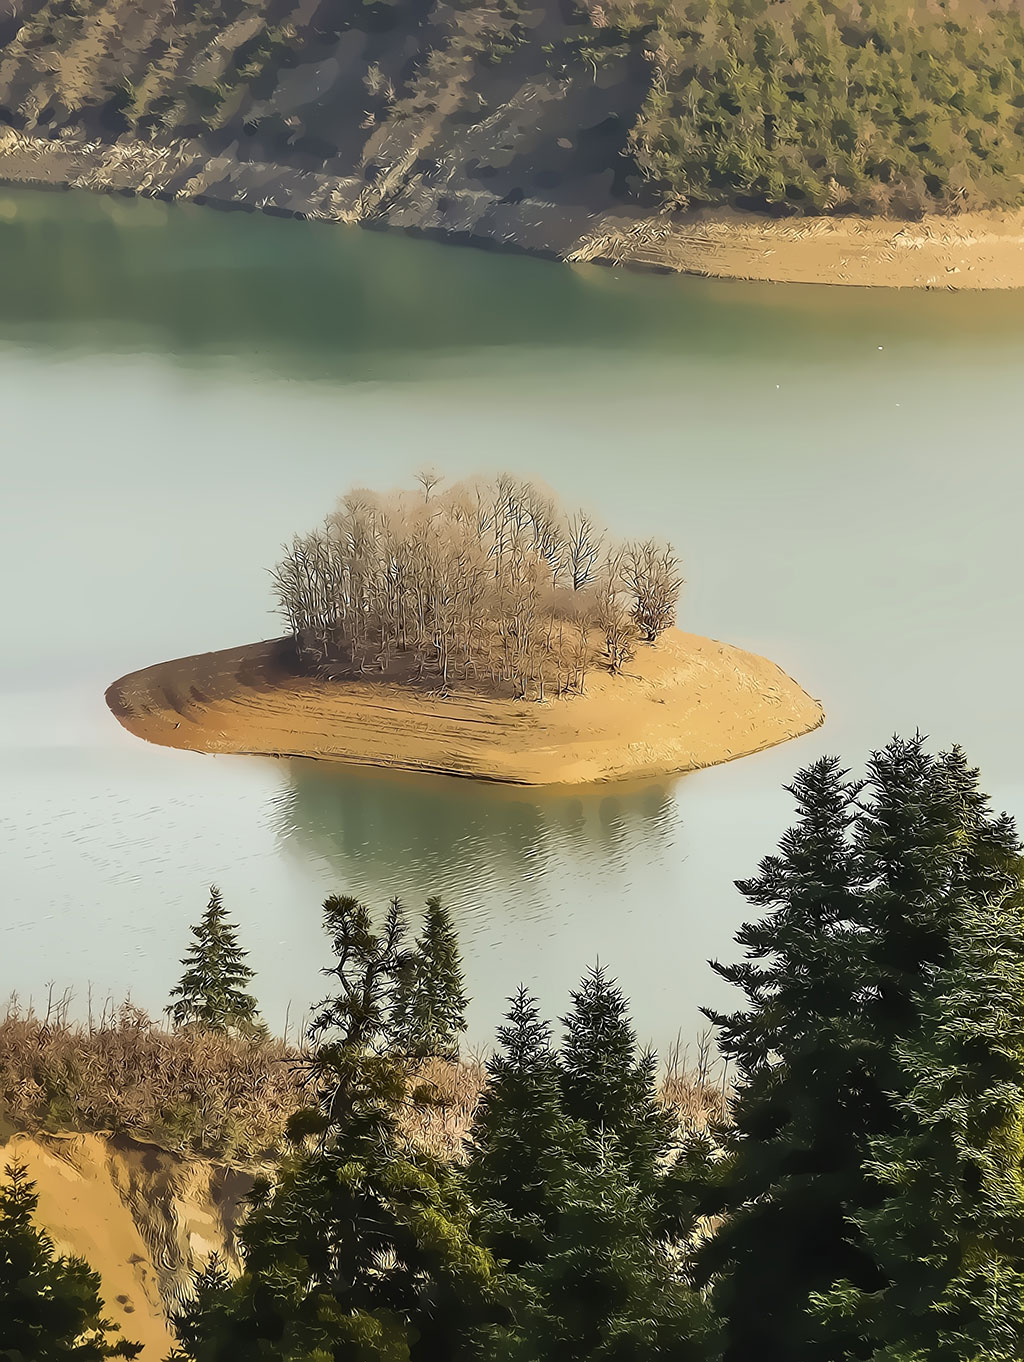 Plastiras lake view with small island, in central Greece - Painting effect